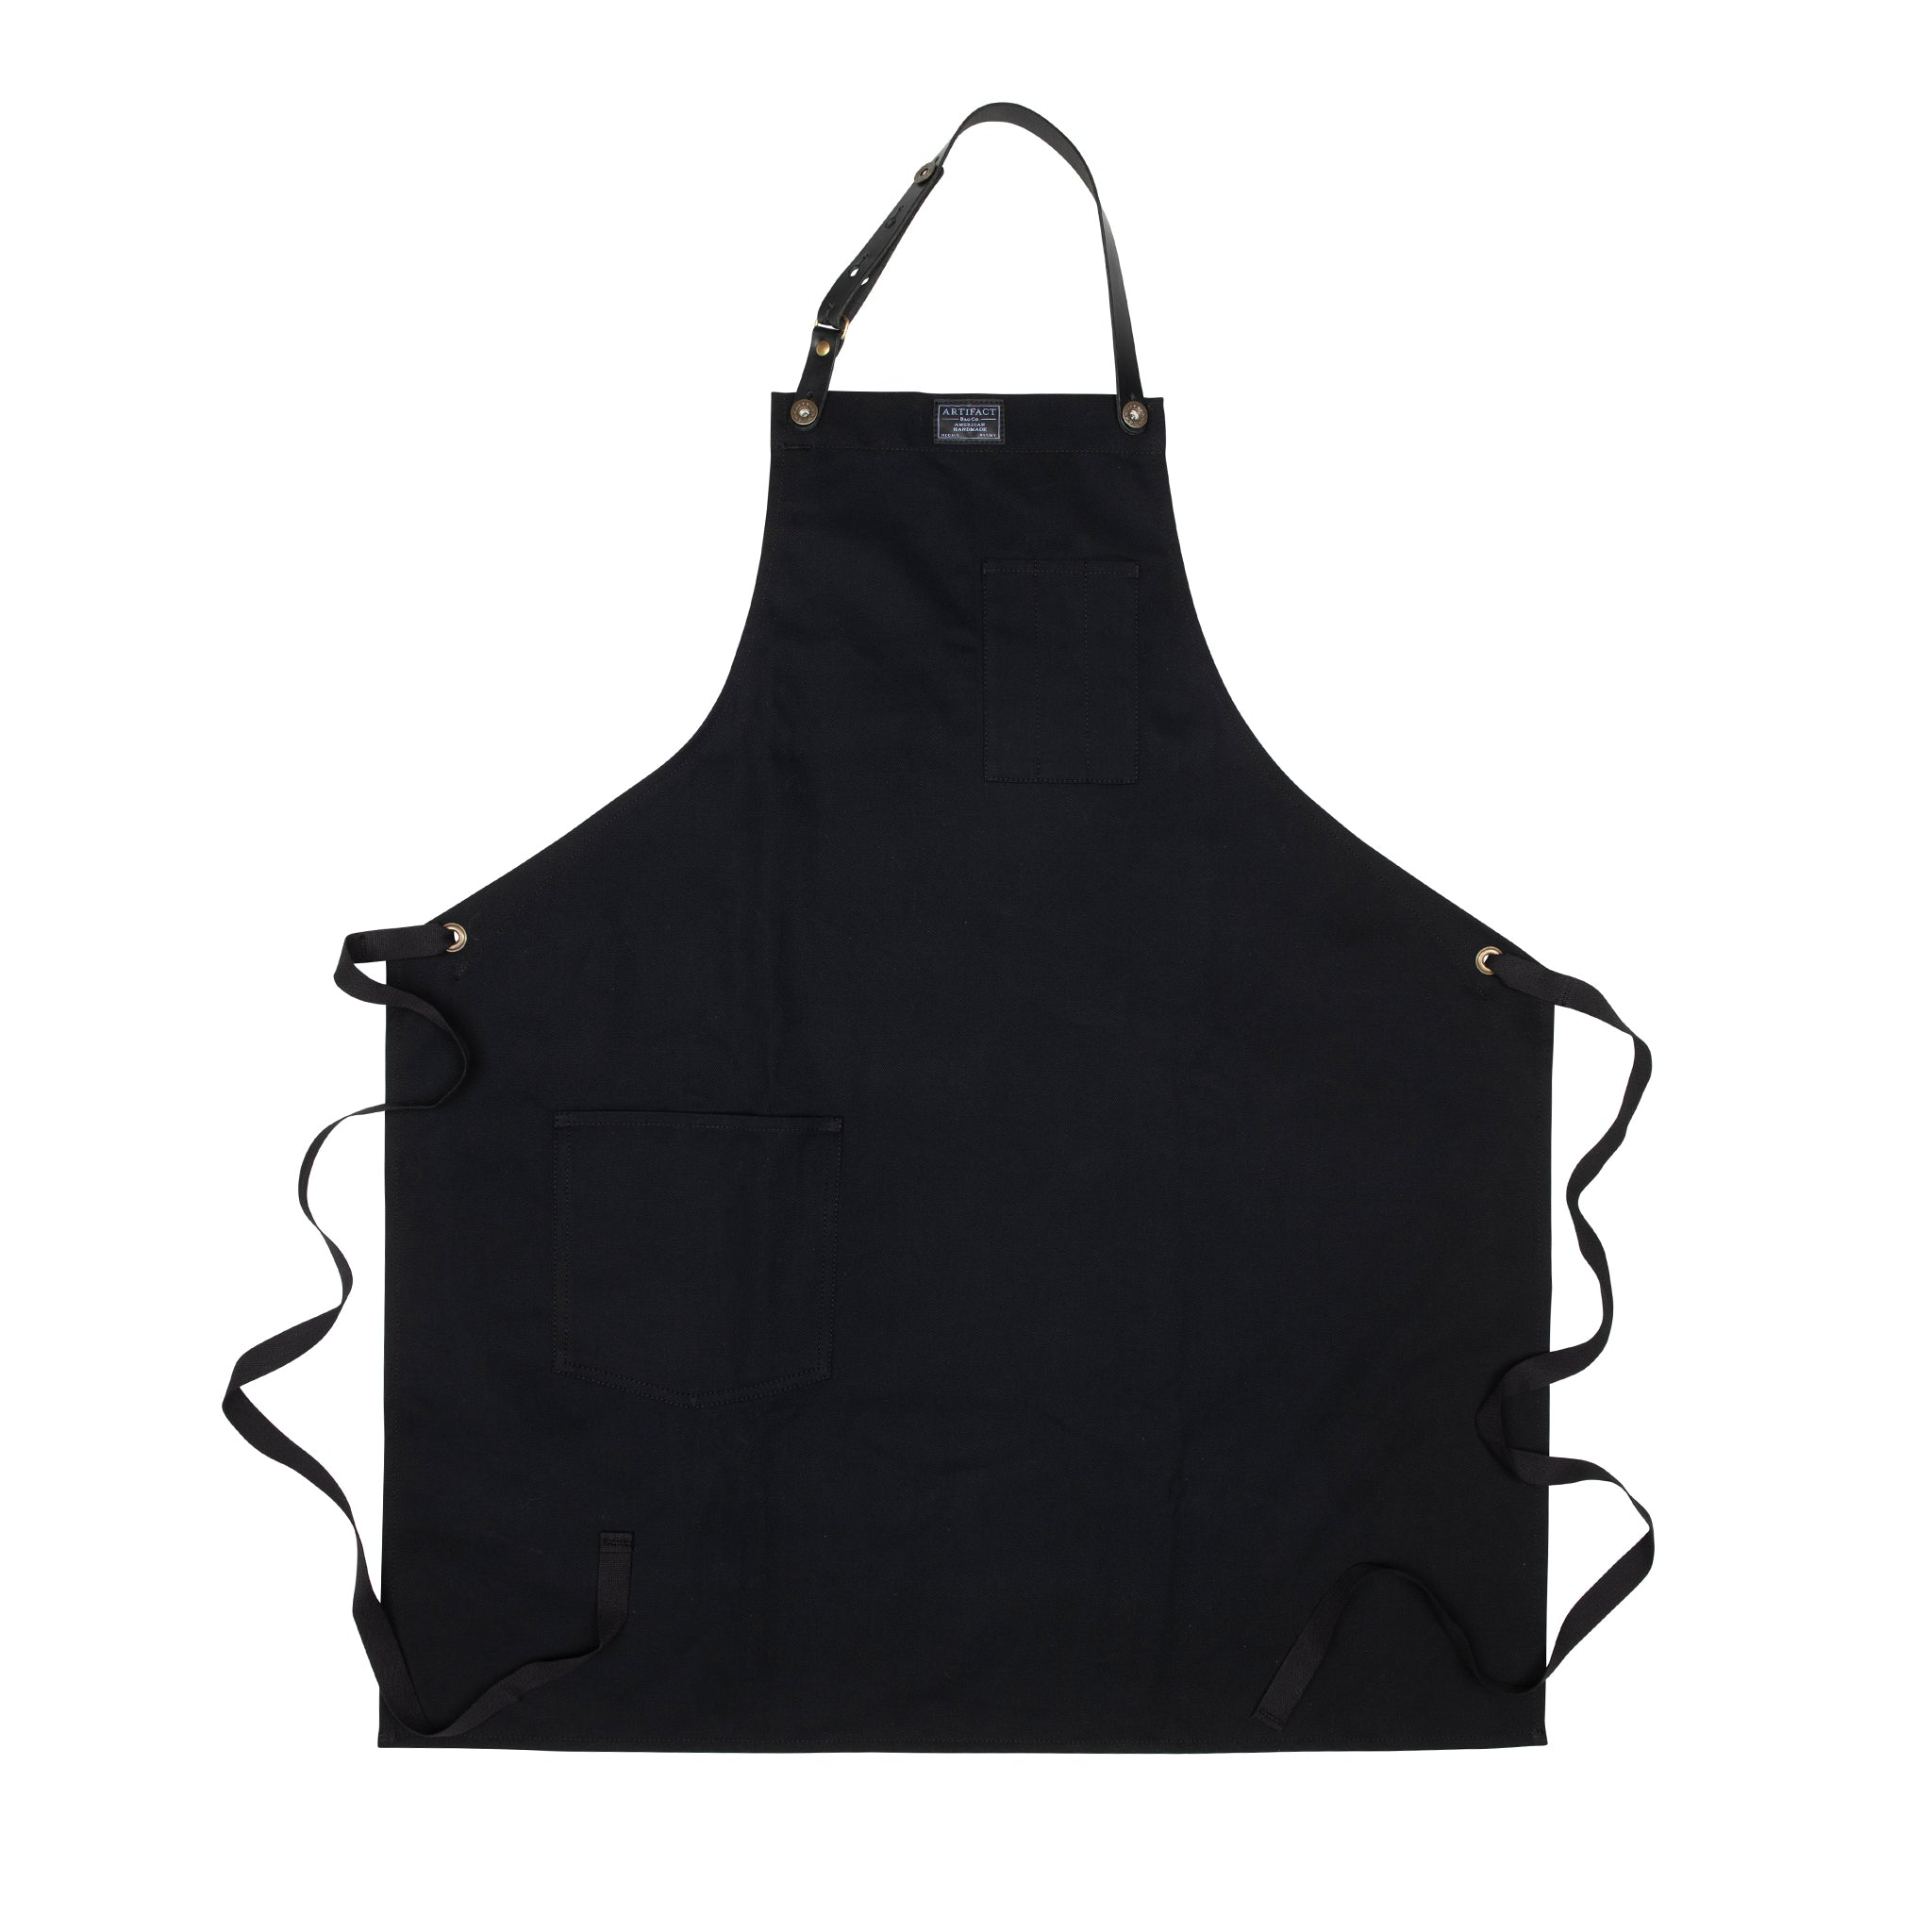 Artifact Black Brushed Twill Apron w/ Leather Leather Strap - Universal Fit